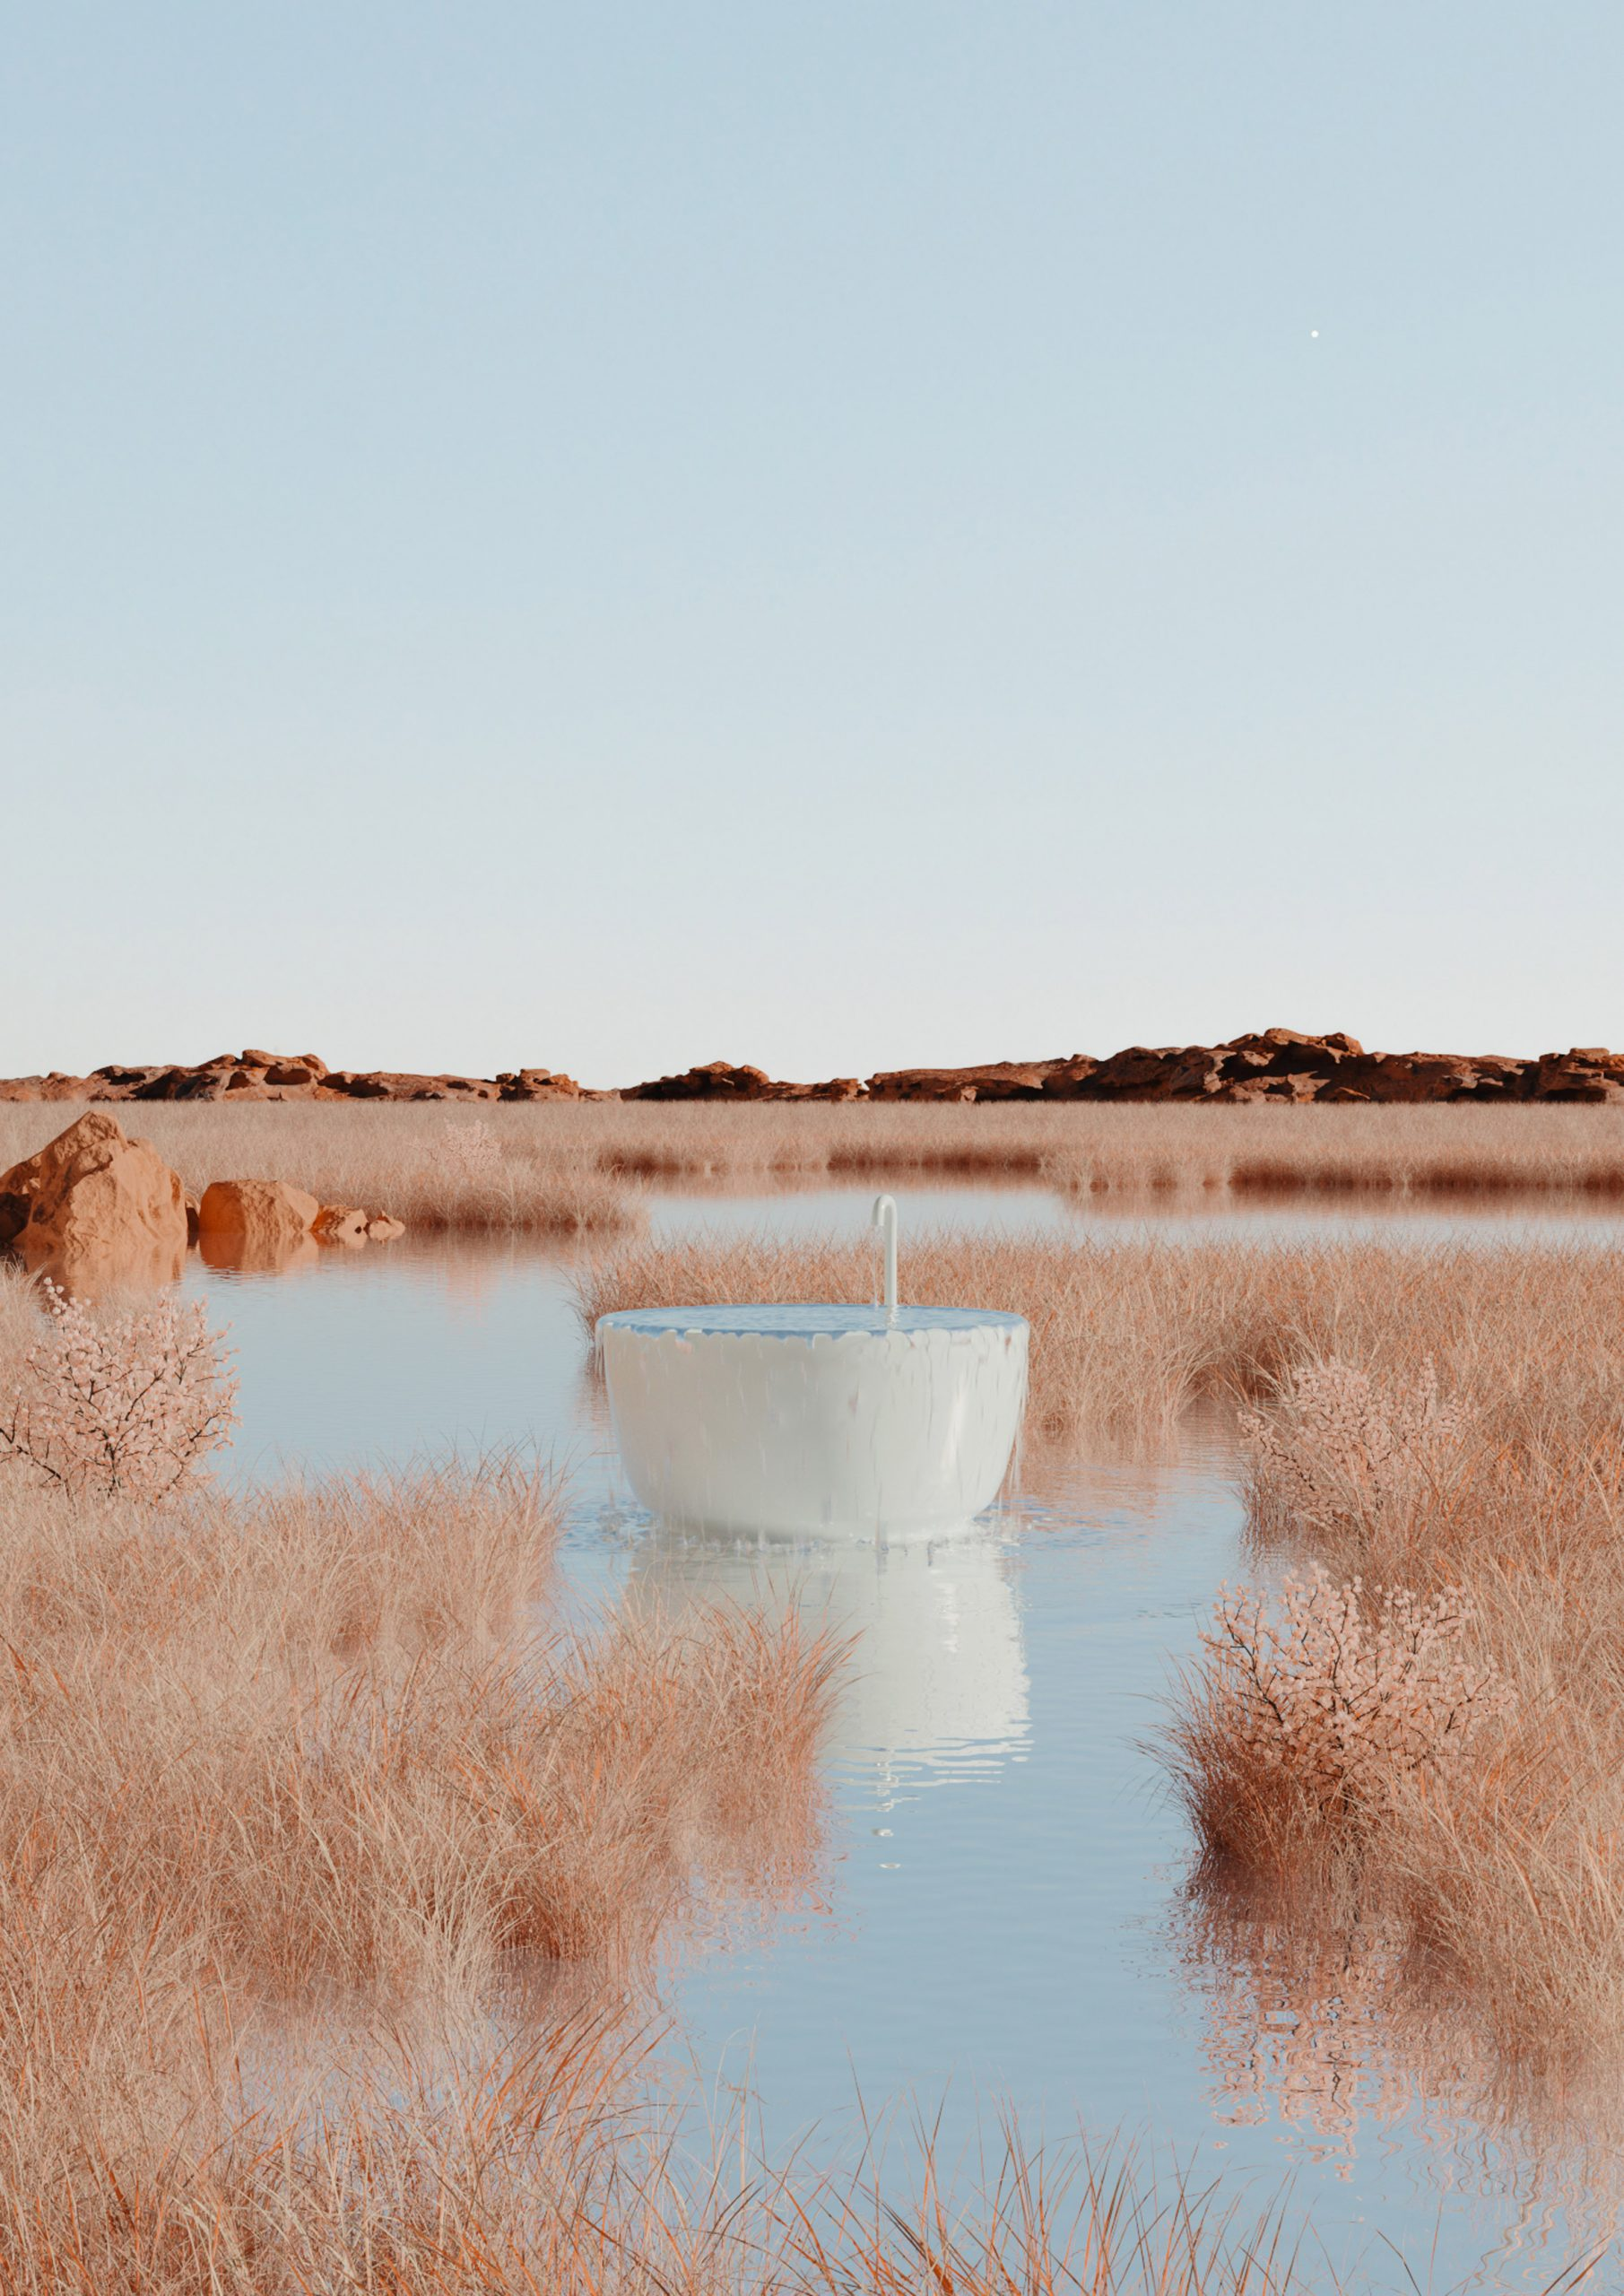 Weekly Wash render from Homesick NFT auction by Alexis Christodoulou